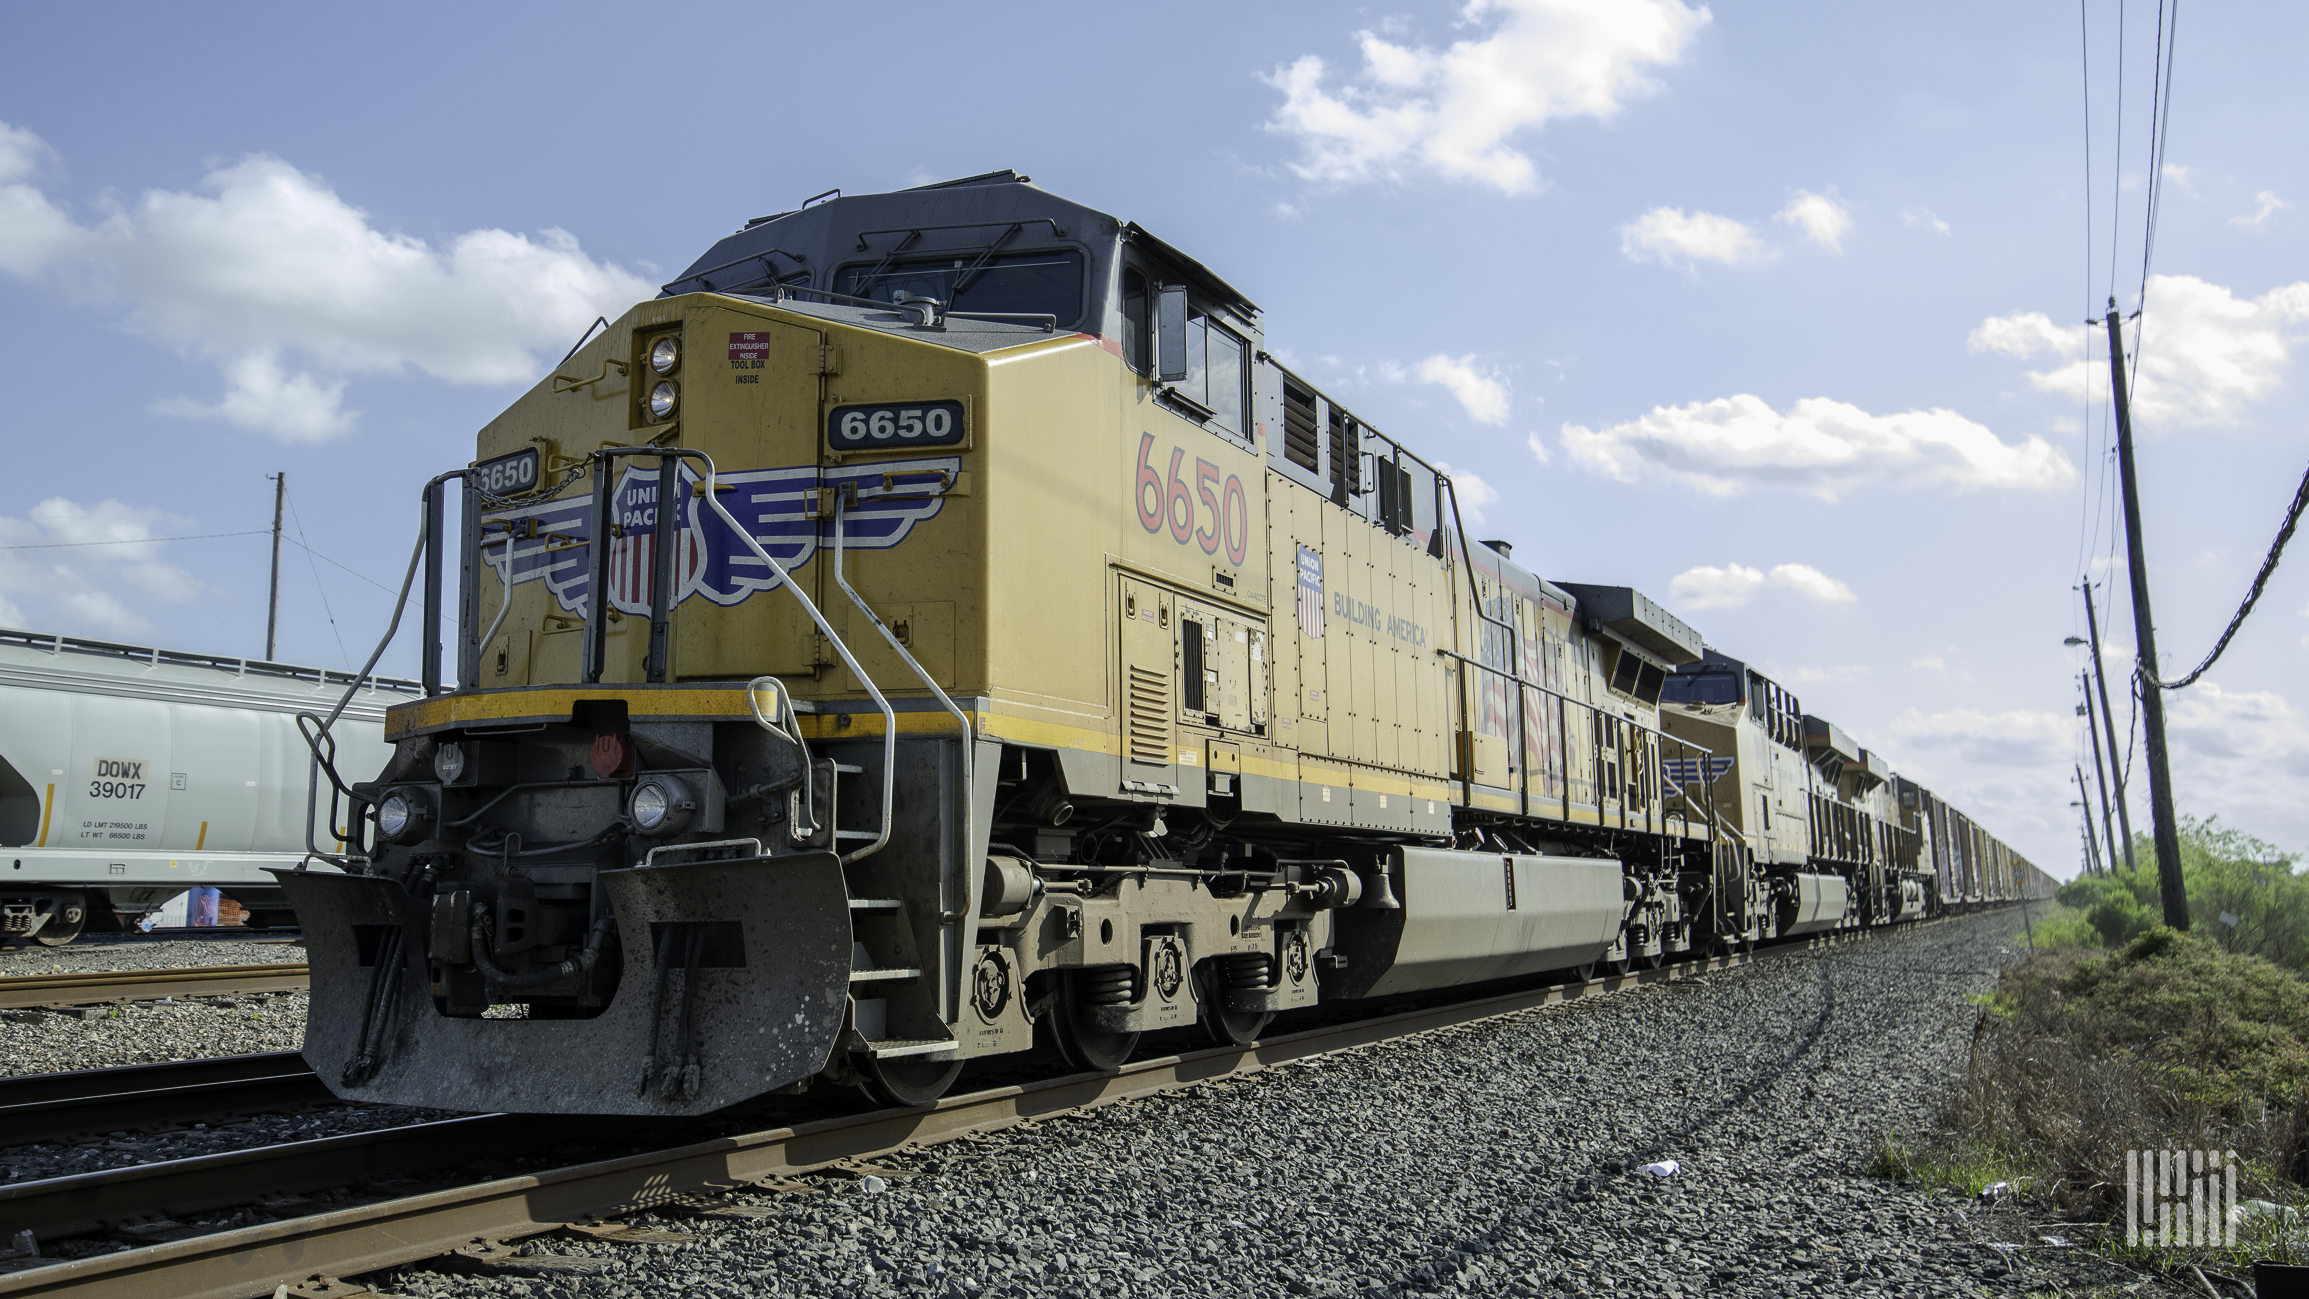 A photograph of a Union Pacific train rolling down a field.